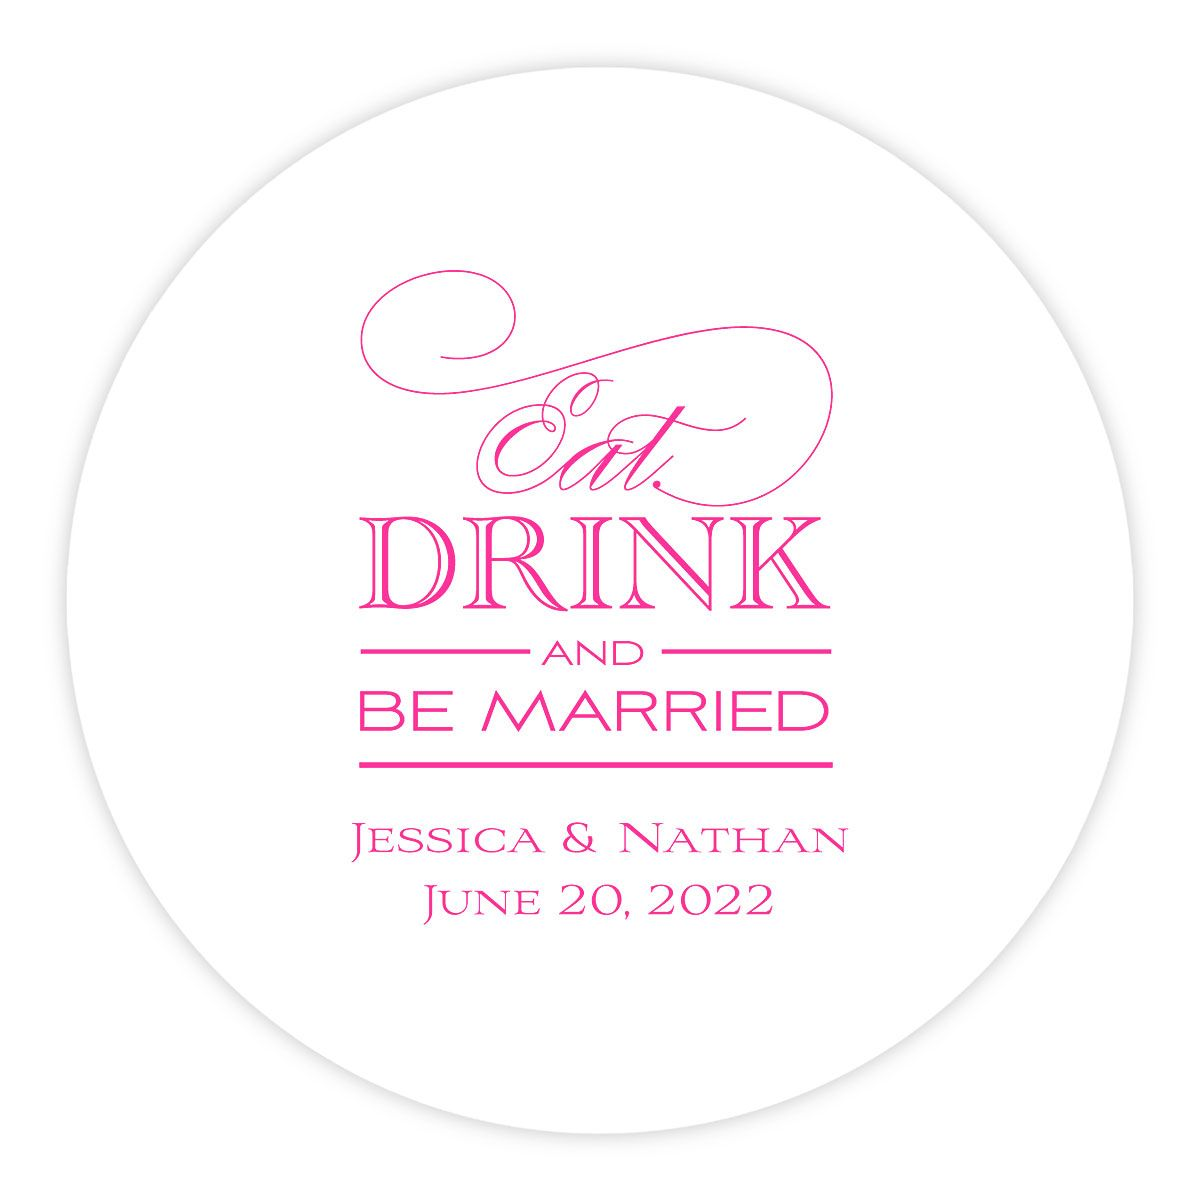 Personalized Letterpress Coasters Eat Drink Be Married